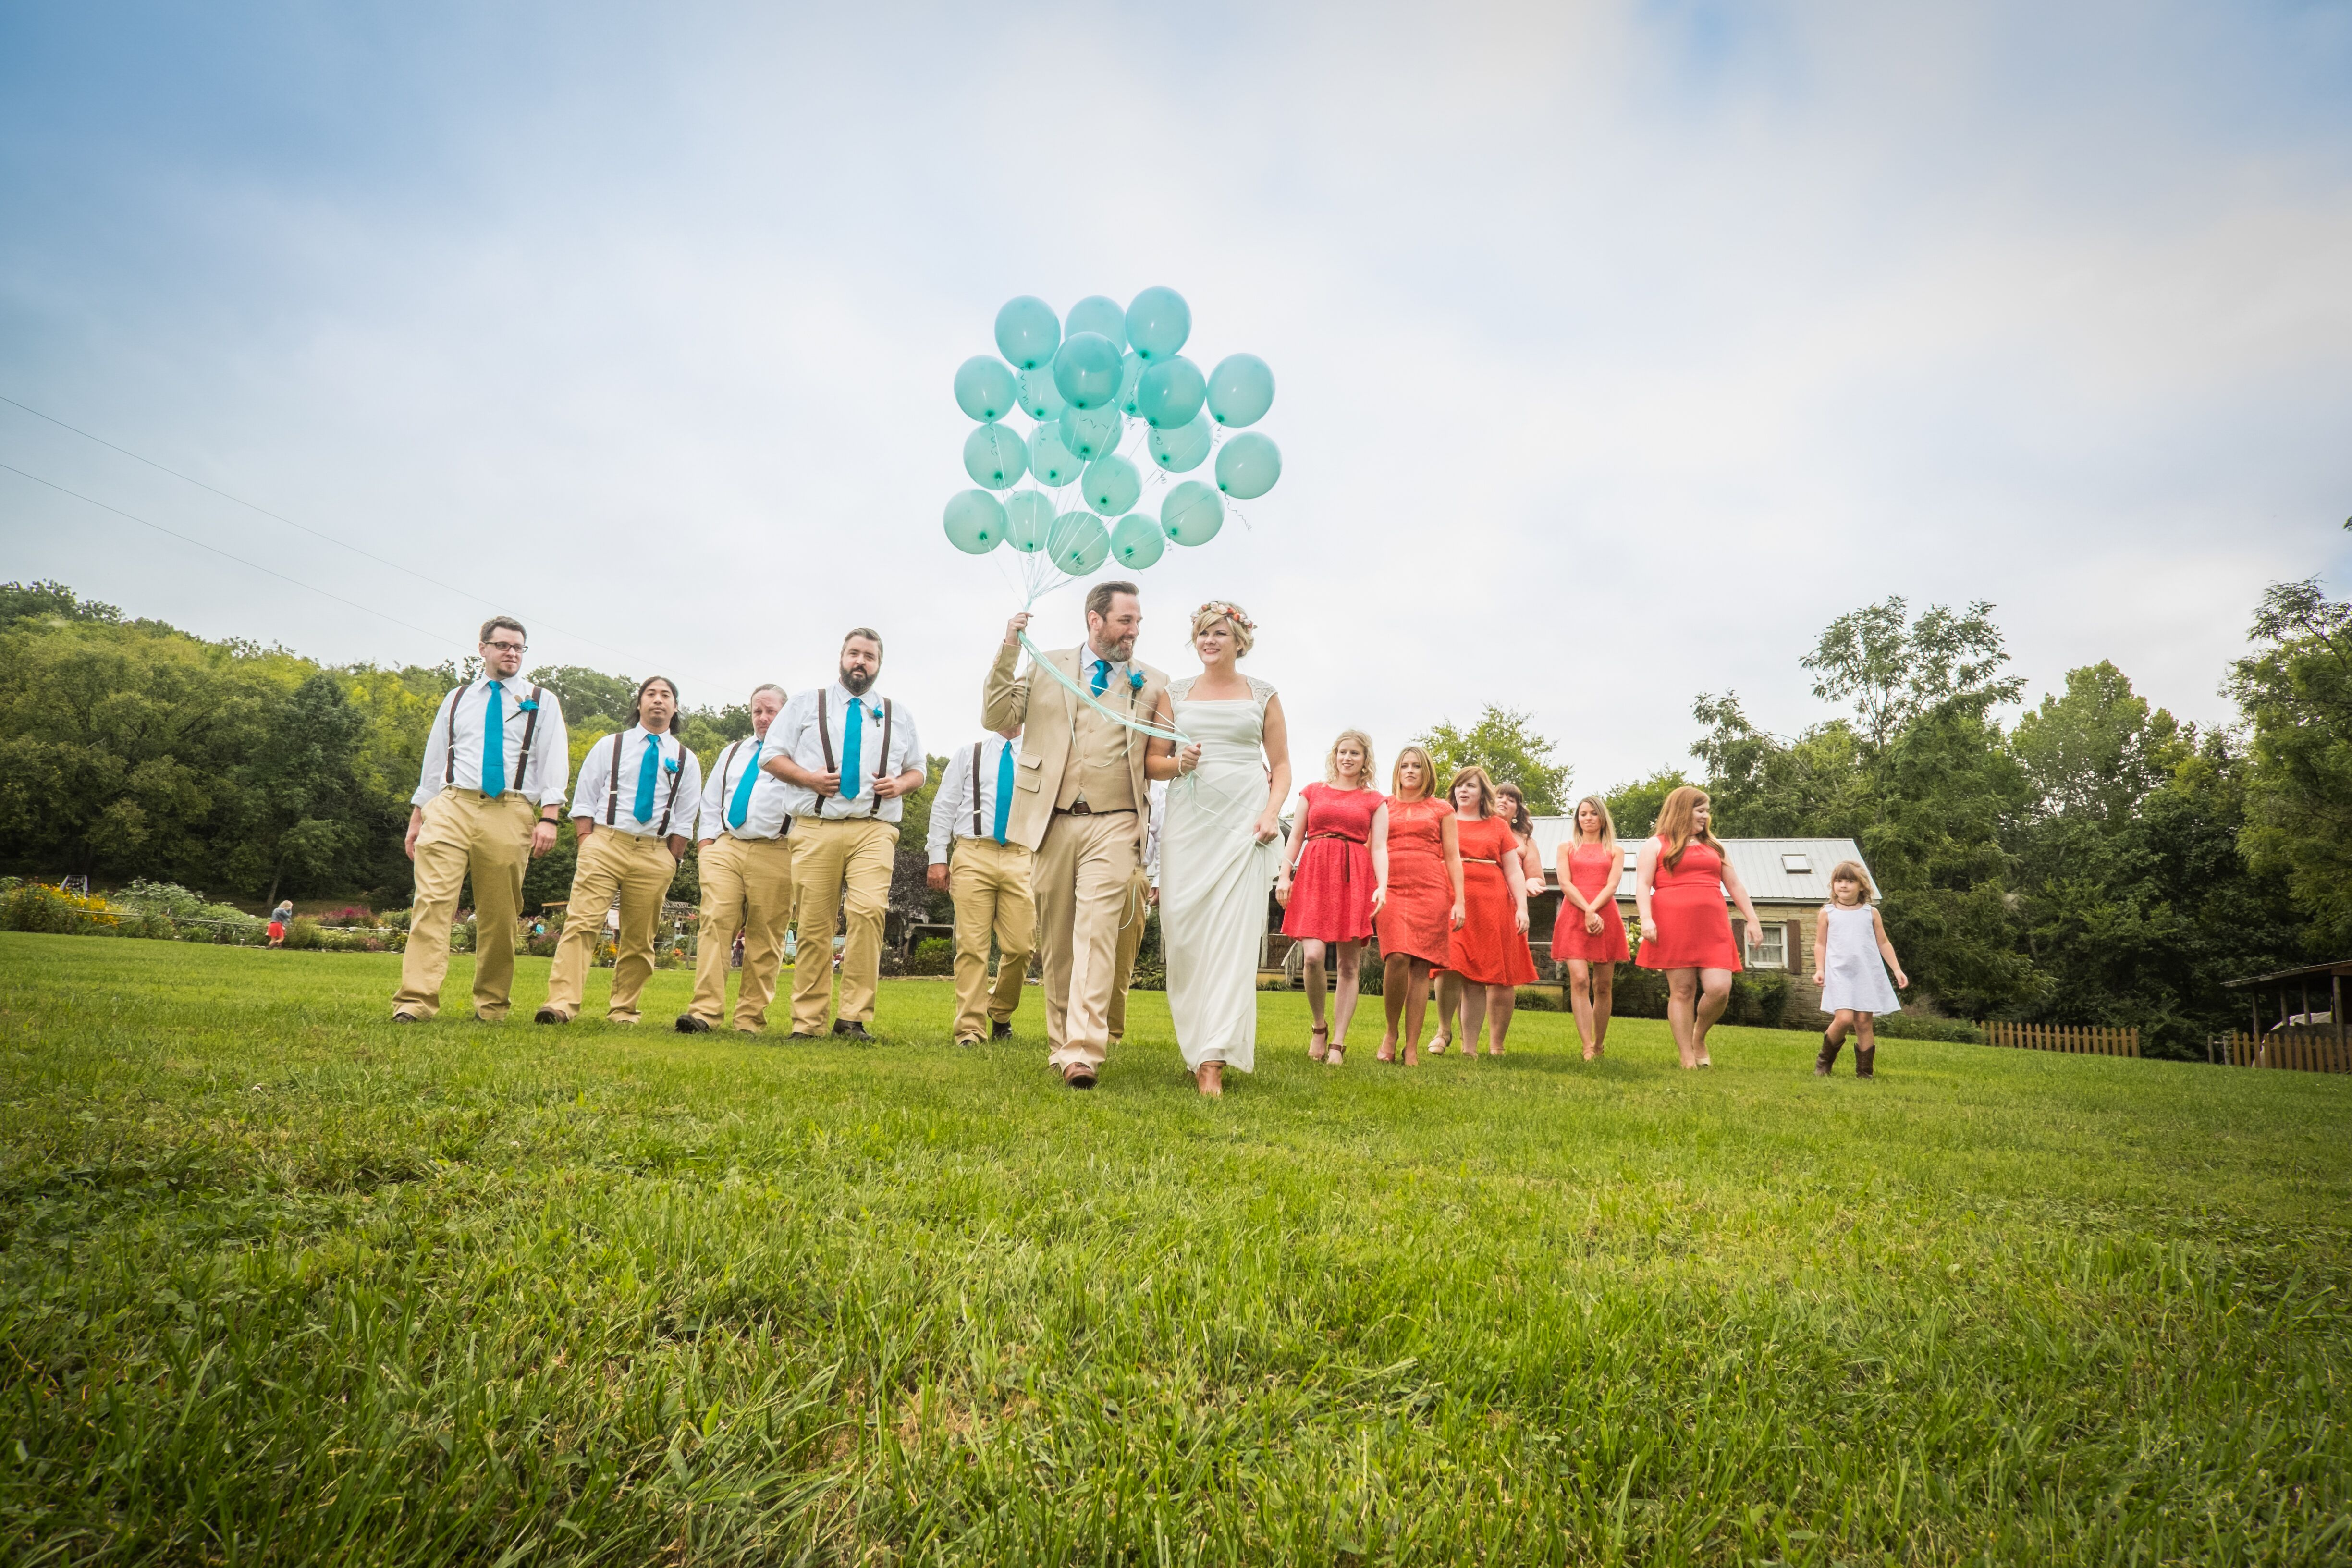 Coral And Turquoise Wedding: Casual Coral And Turquoise Wedding Party